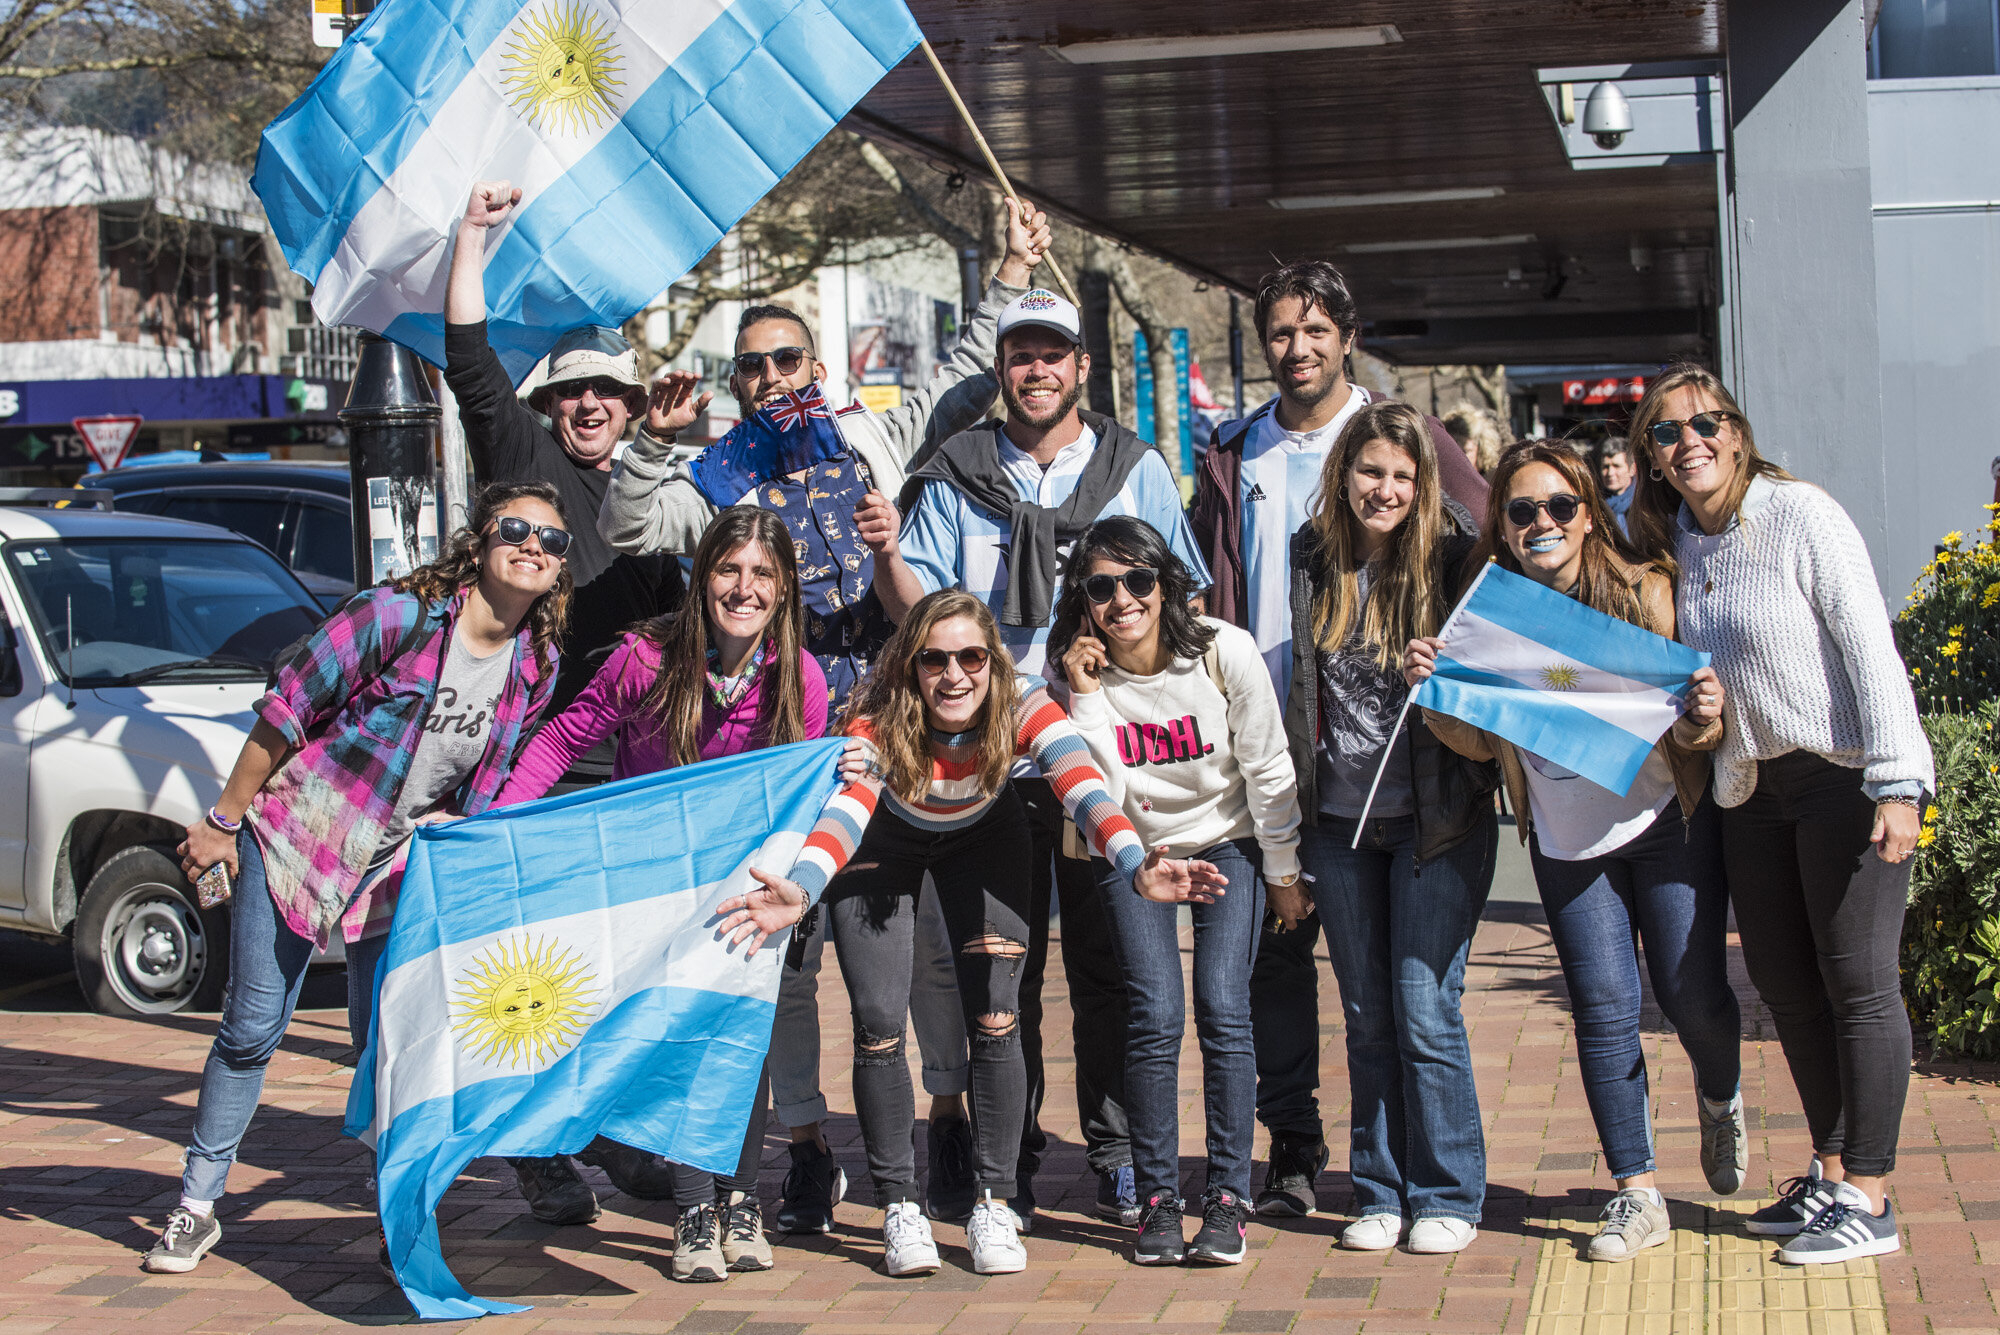 Great to have the Argentinians in town